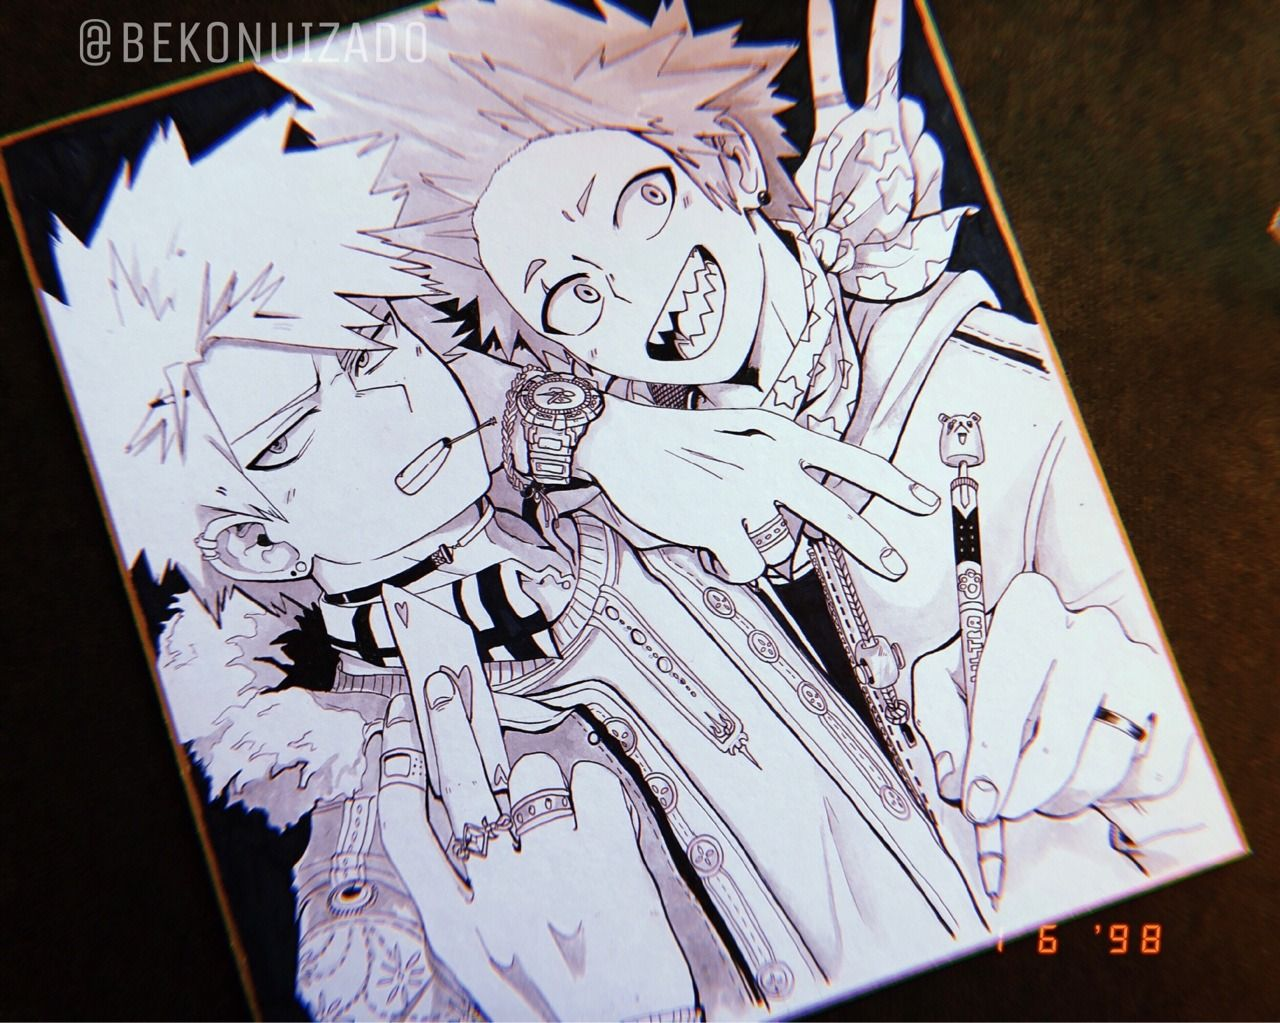 Bakushima Heals the Soul (With images) Anime book, Hero